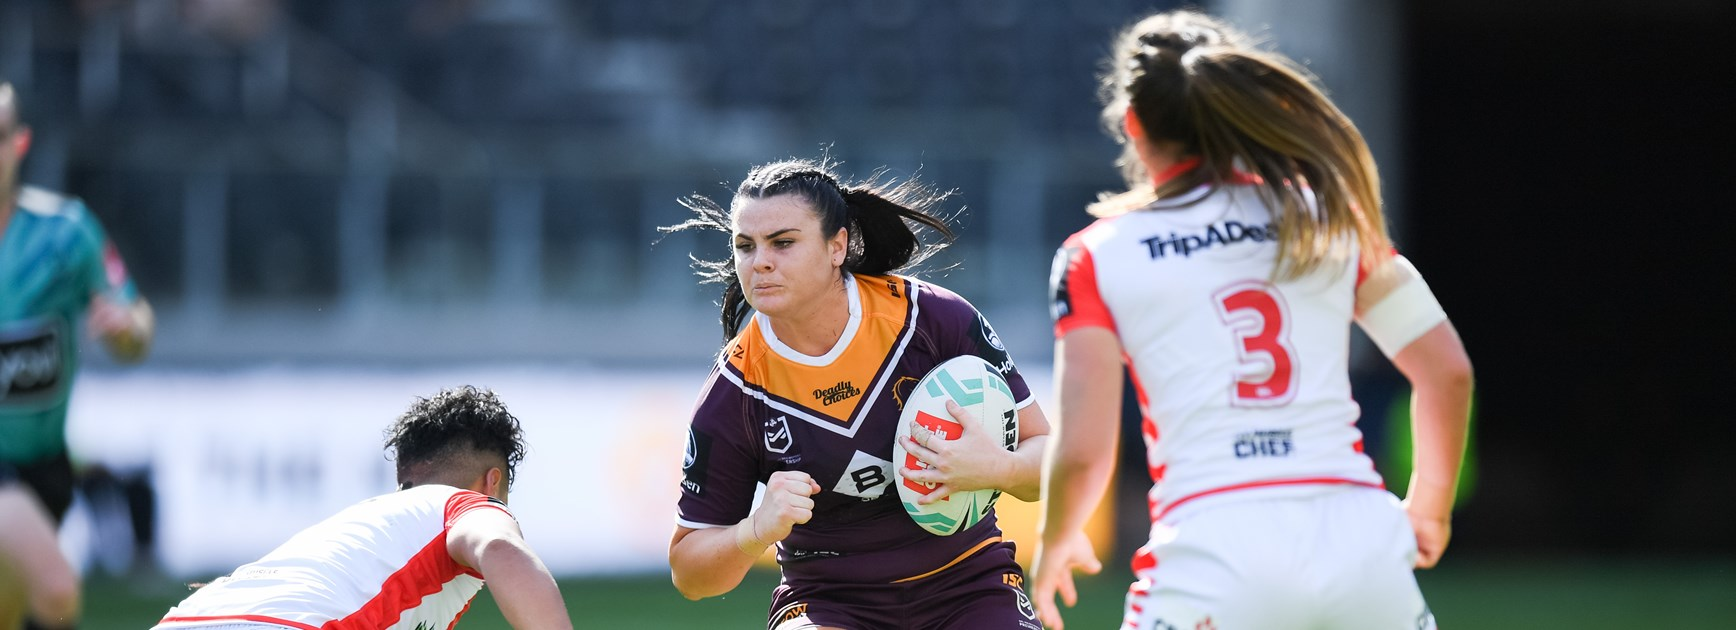 Broncos coach Wright lauds side's grittiness in NRLW win